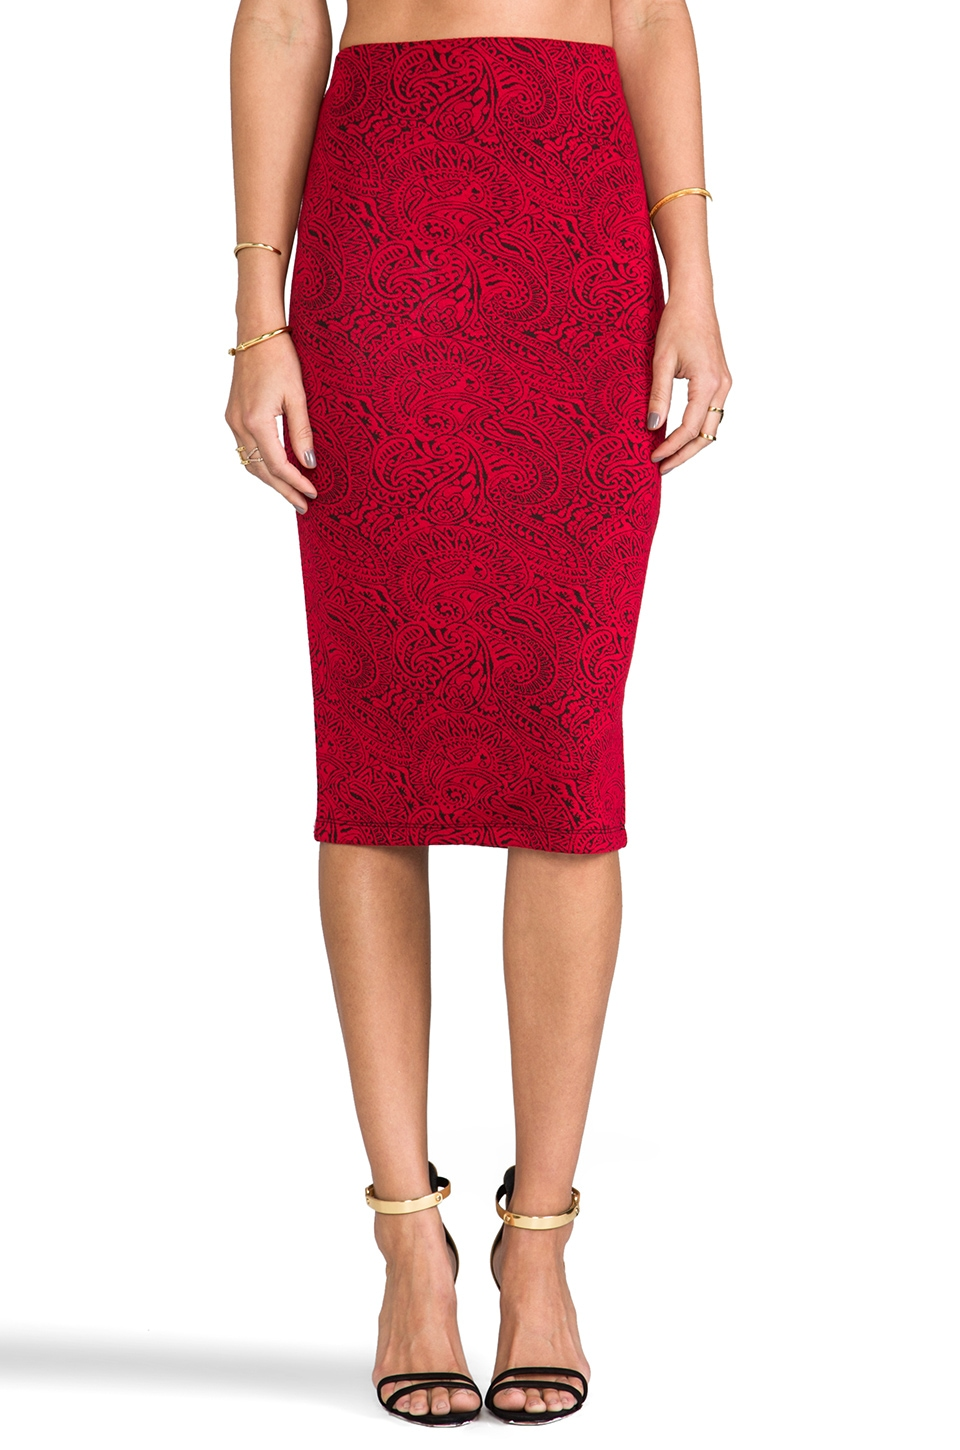 BB Dakota Convoy Paisley Brocade Ponte Skirt in Cardinal Red